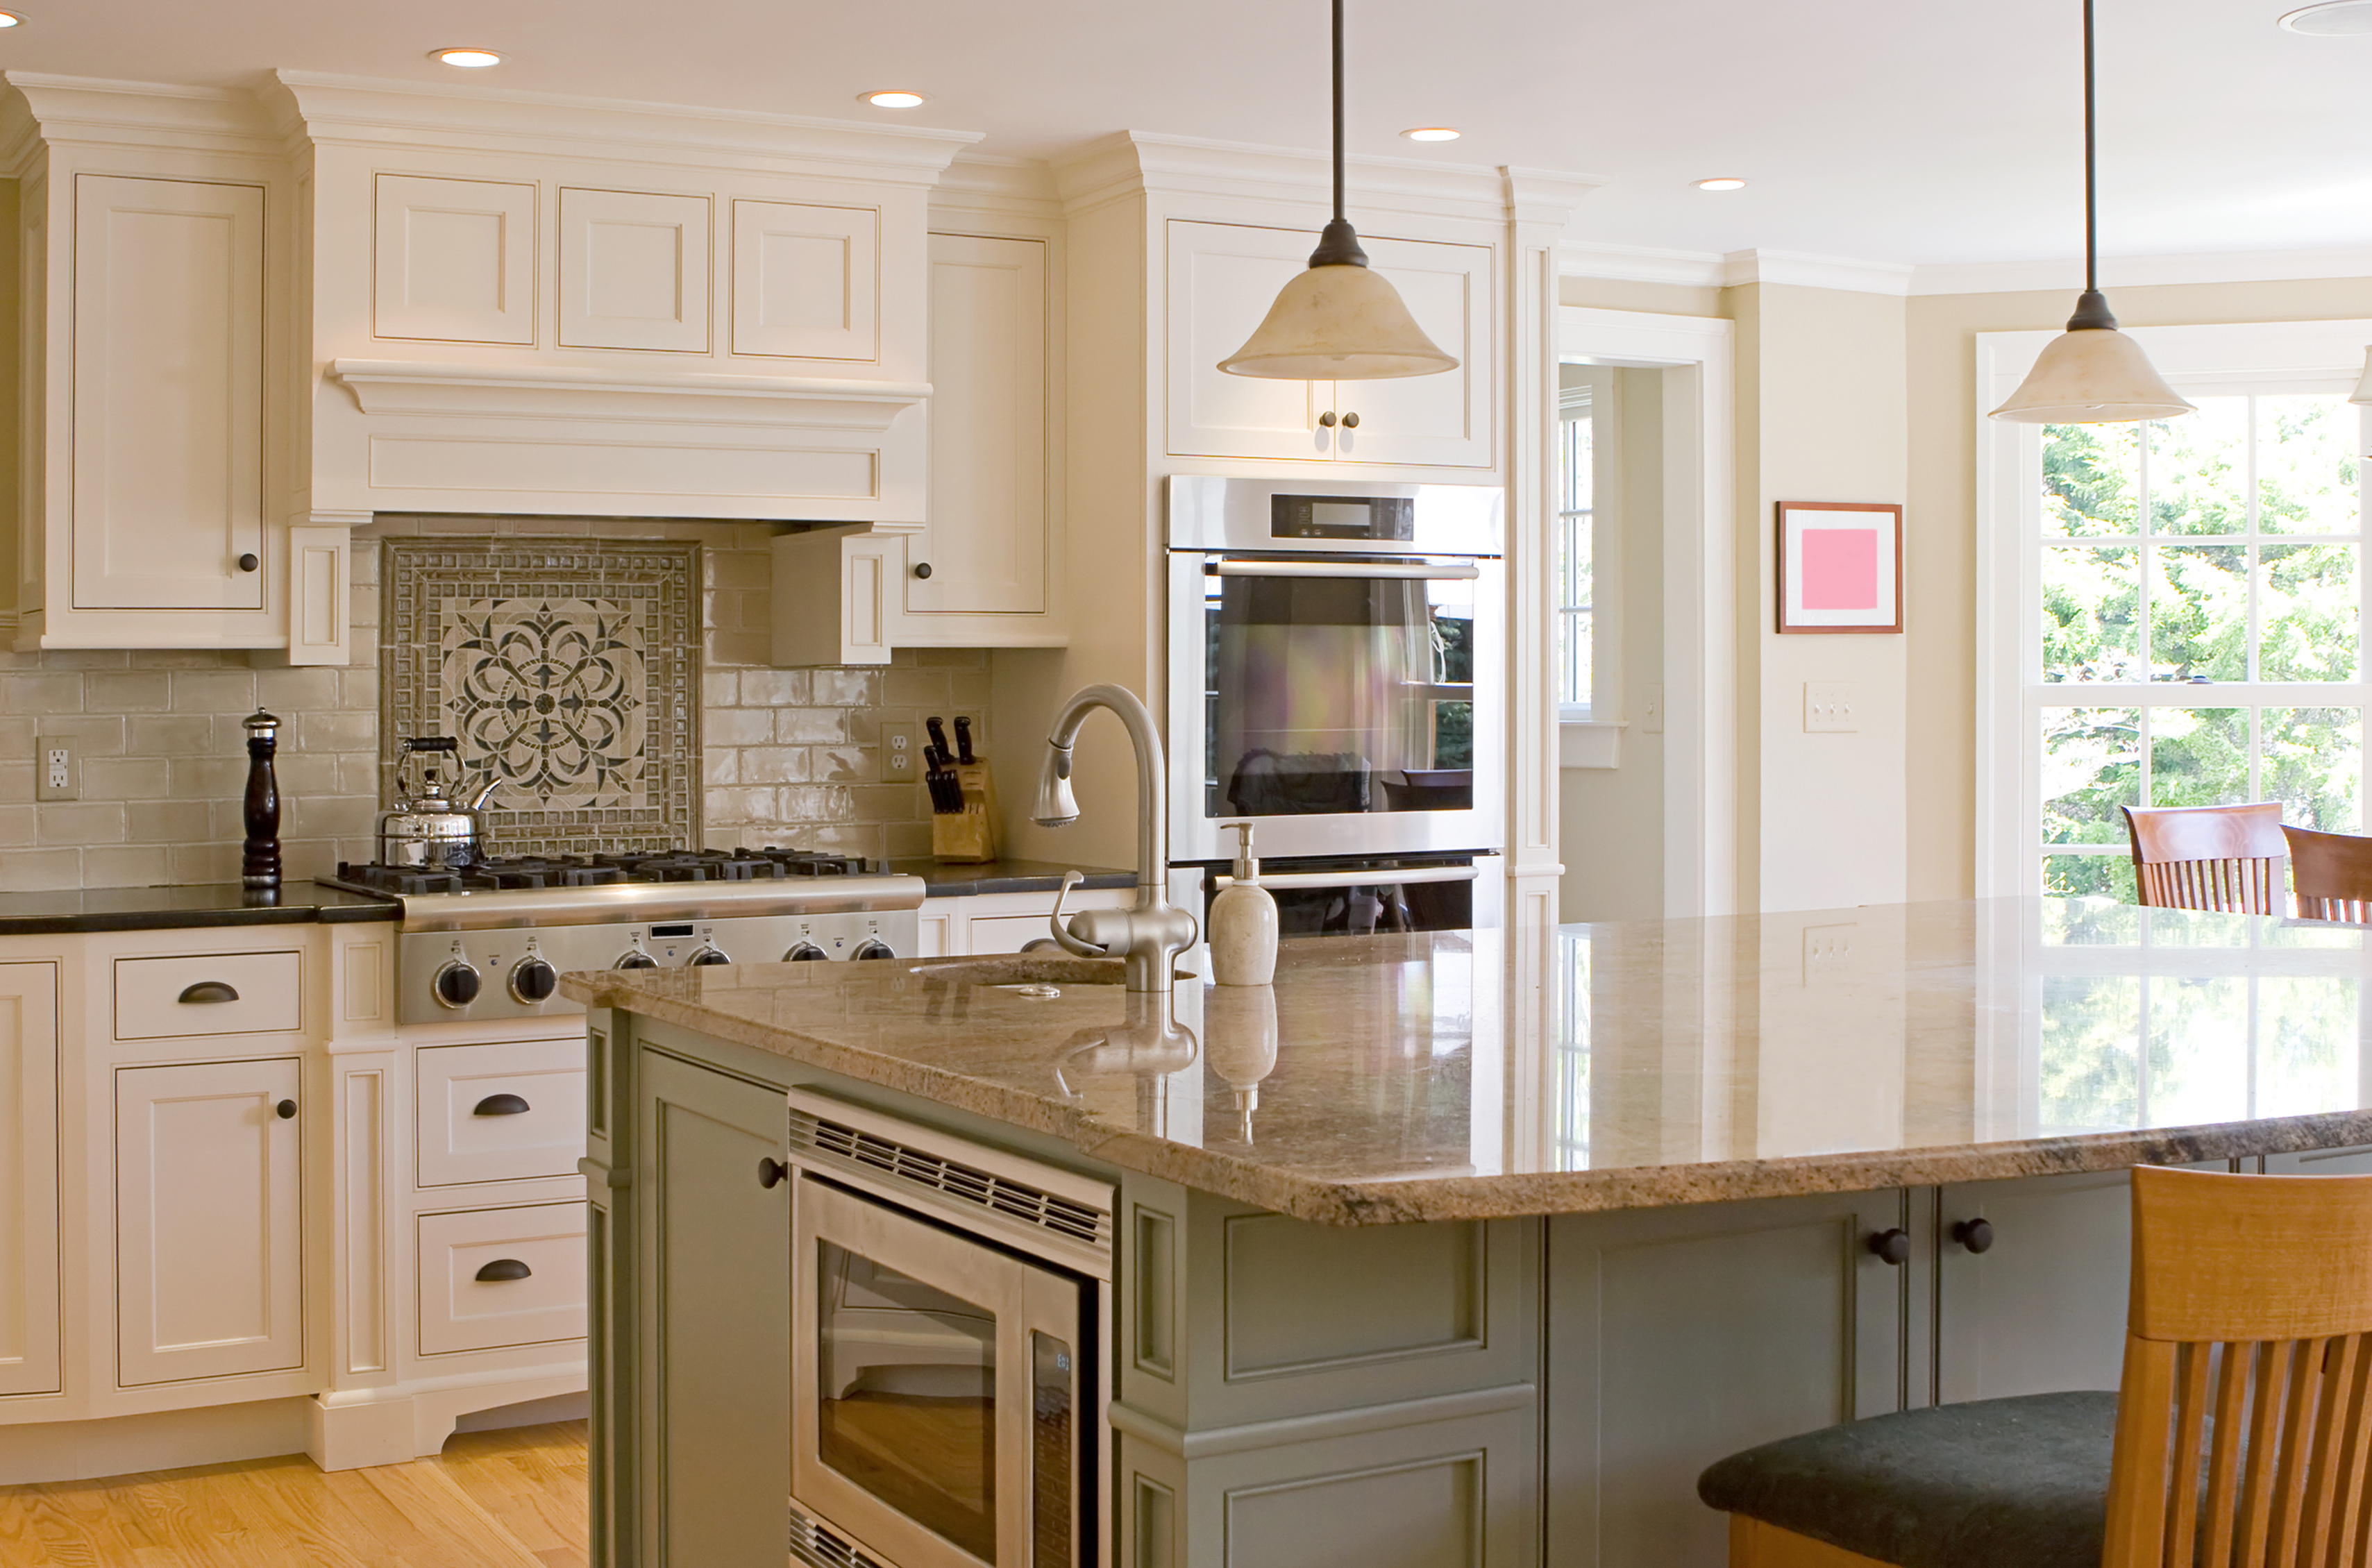 The Standard Overhang of a Kitchen Countertop | Home